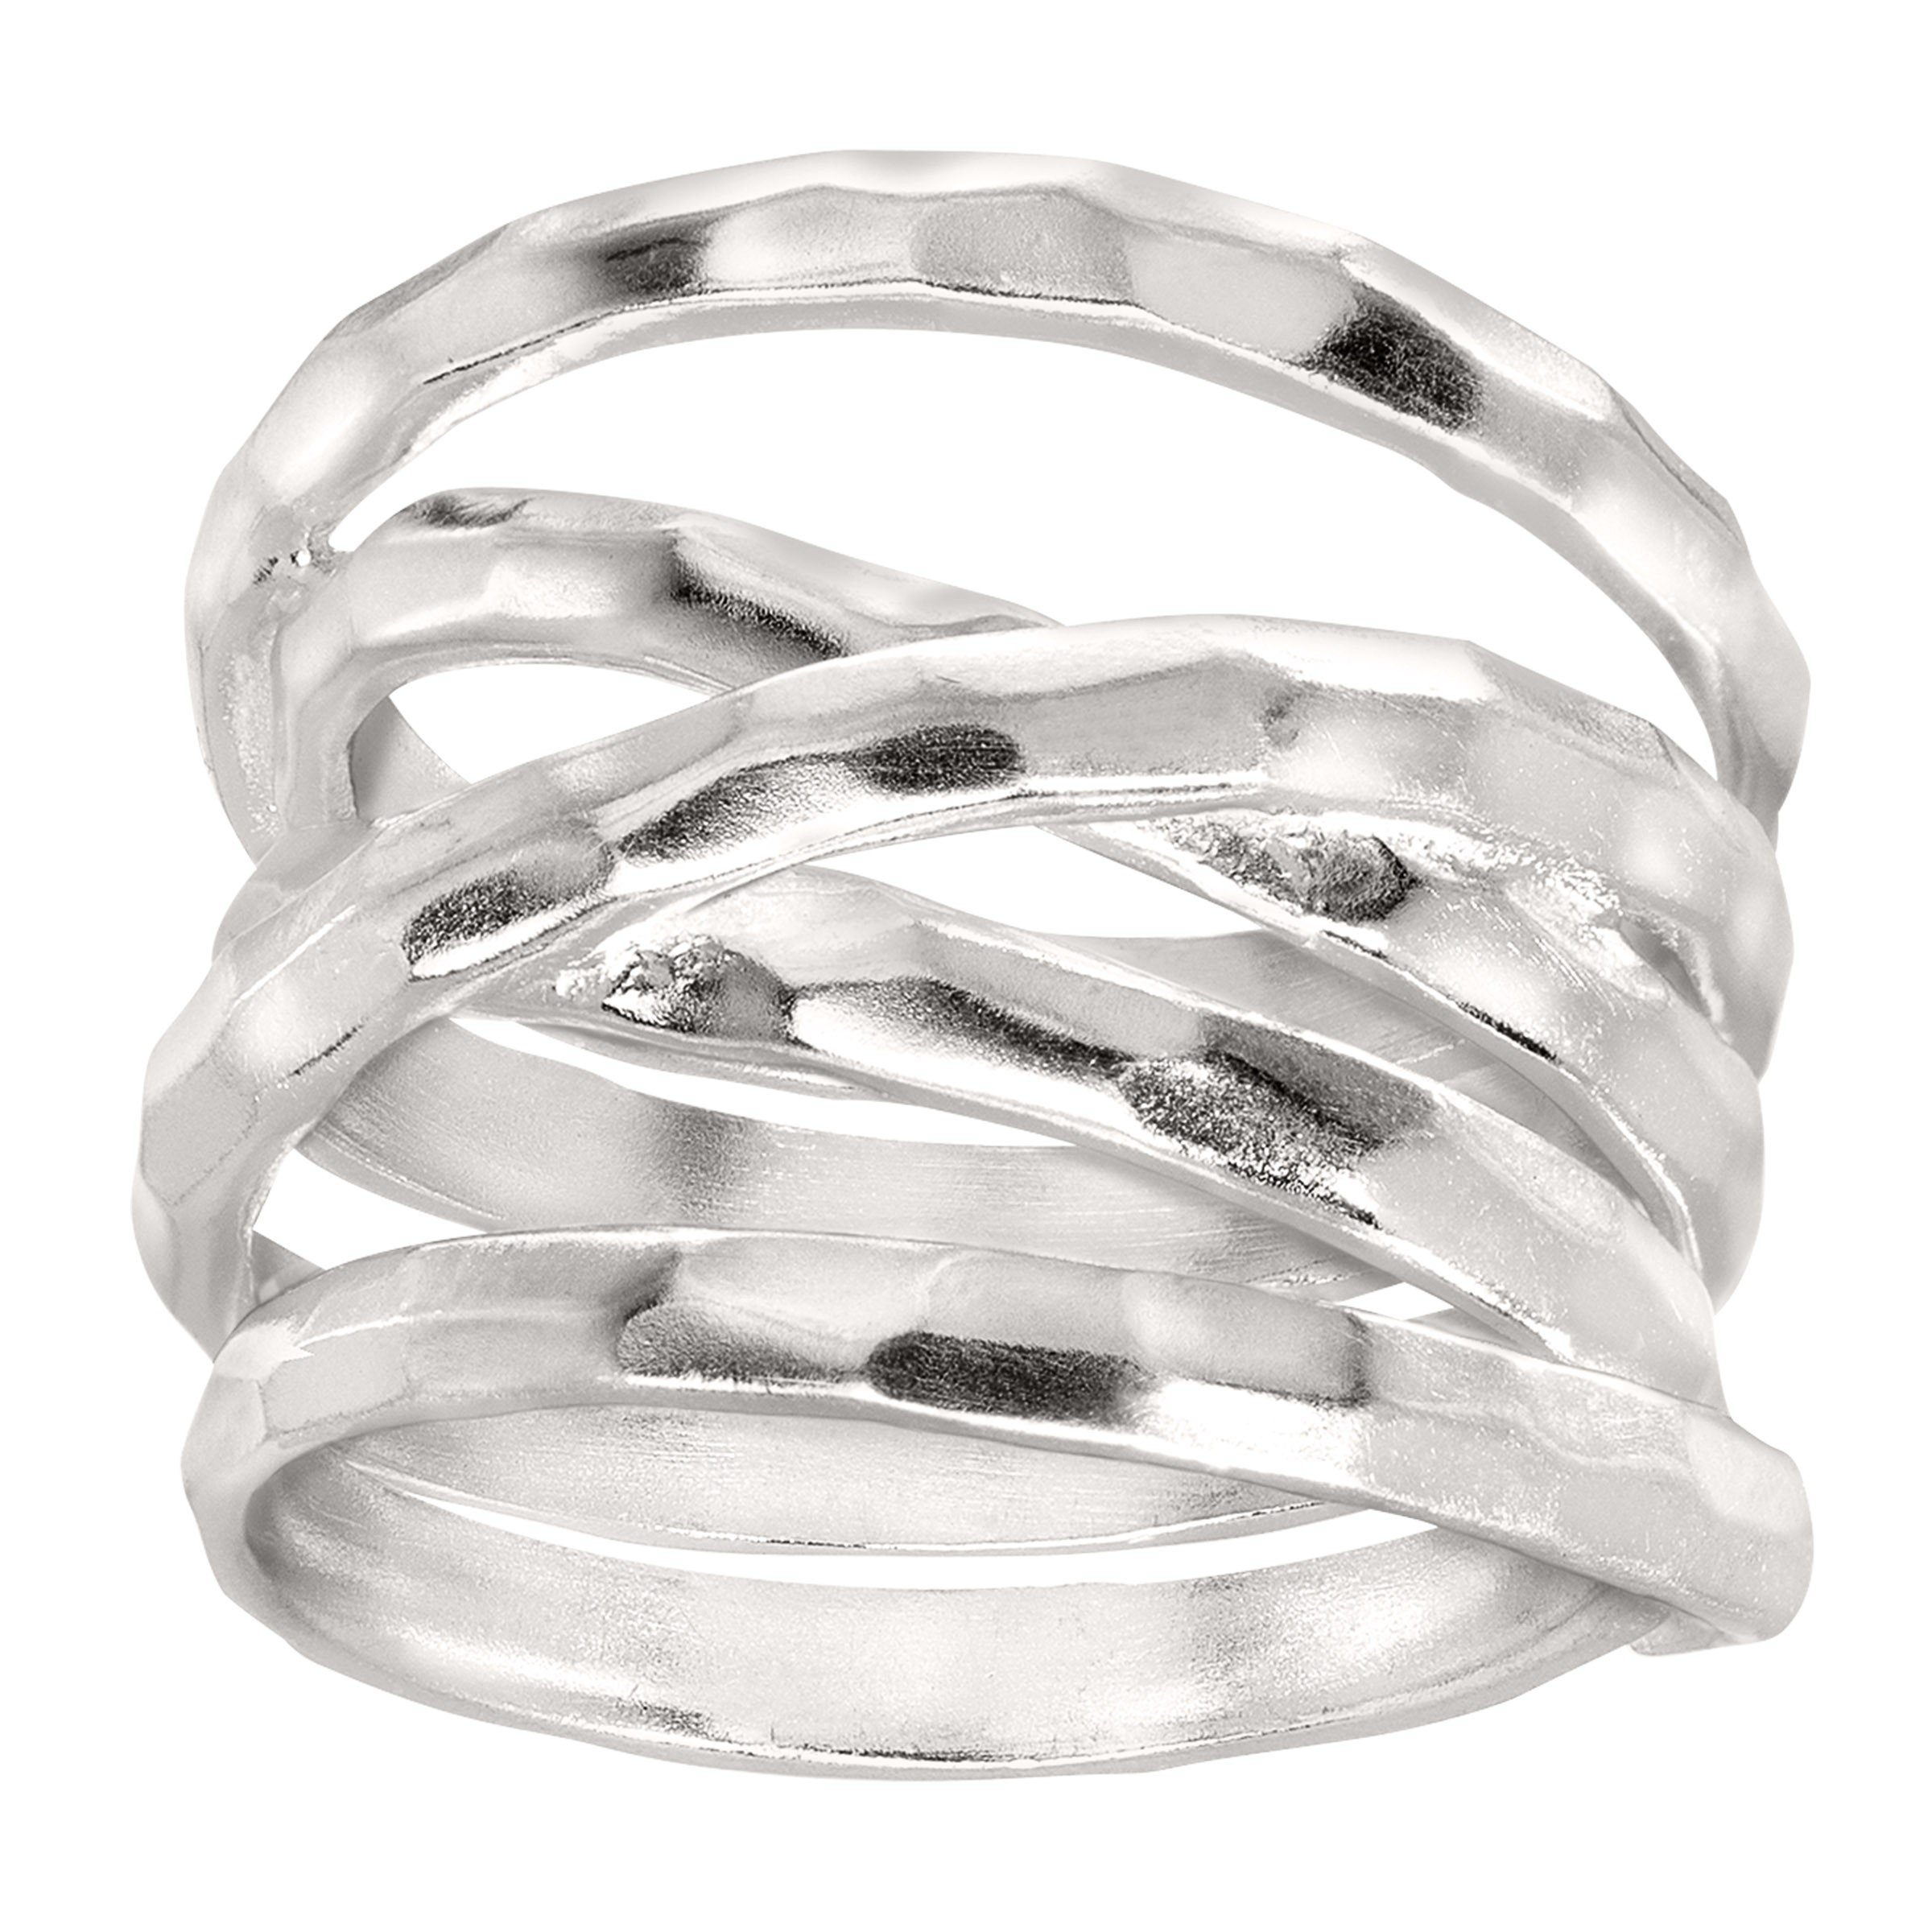 Silpada 'Wrapped Up' Sterling Silver Ring, Size 9 by Silpada